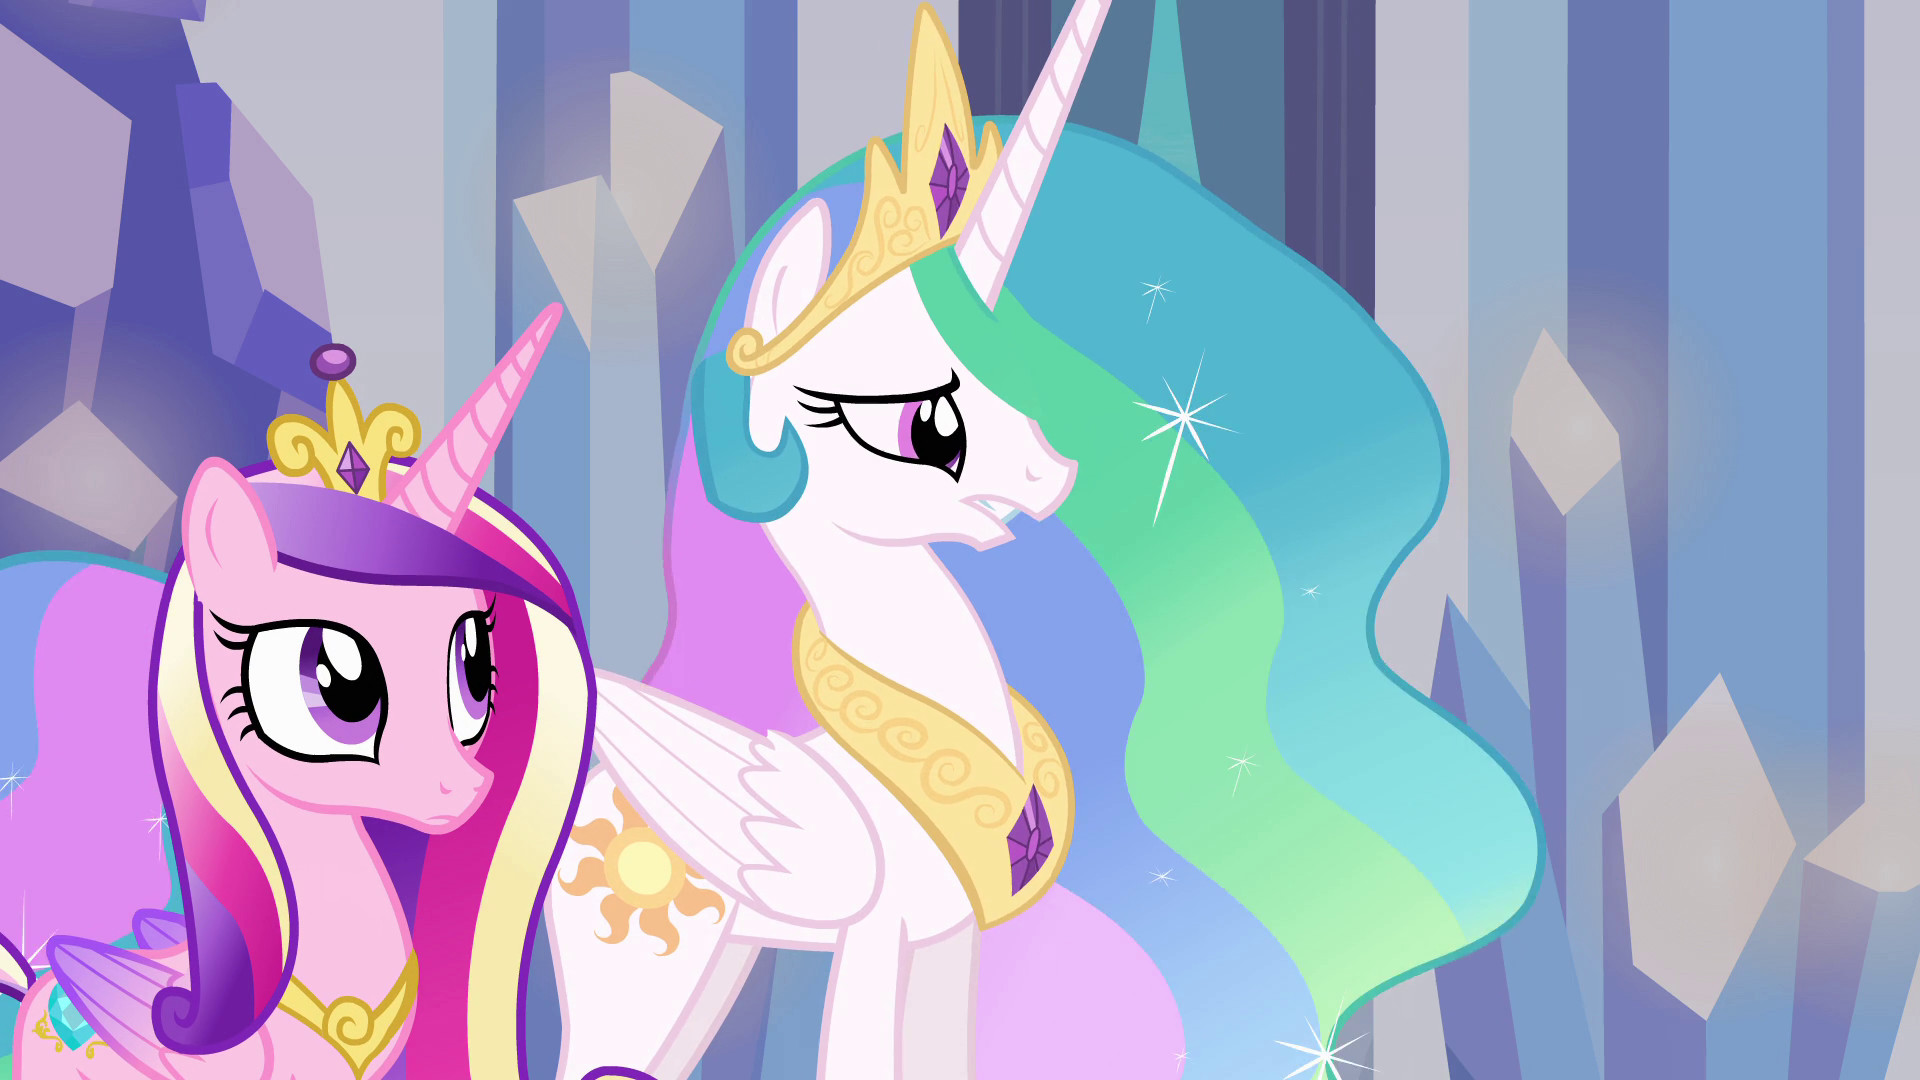 1920x1080 Image - Celestia and Cadance in throne room EG.png | My Little Pony  Friendship is Magic Wiki | FANDOM powered by Wikia